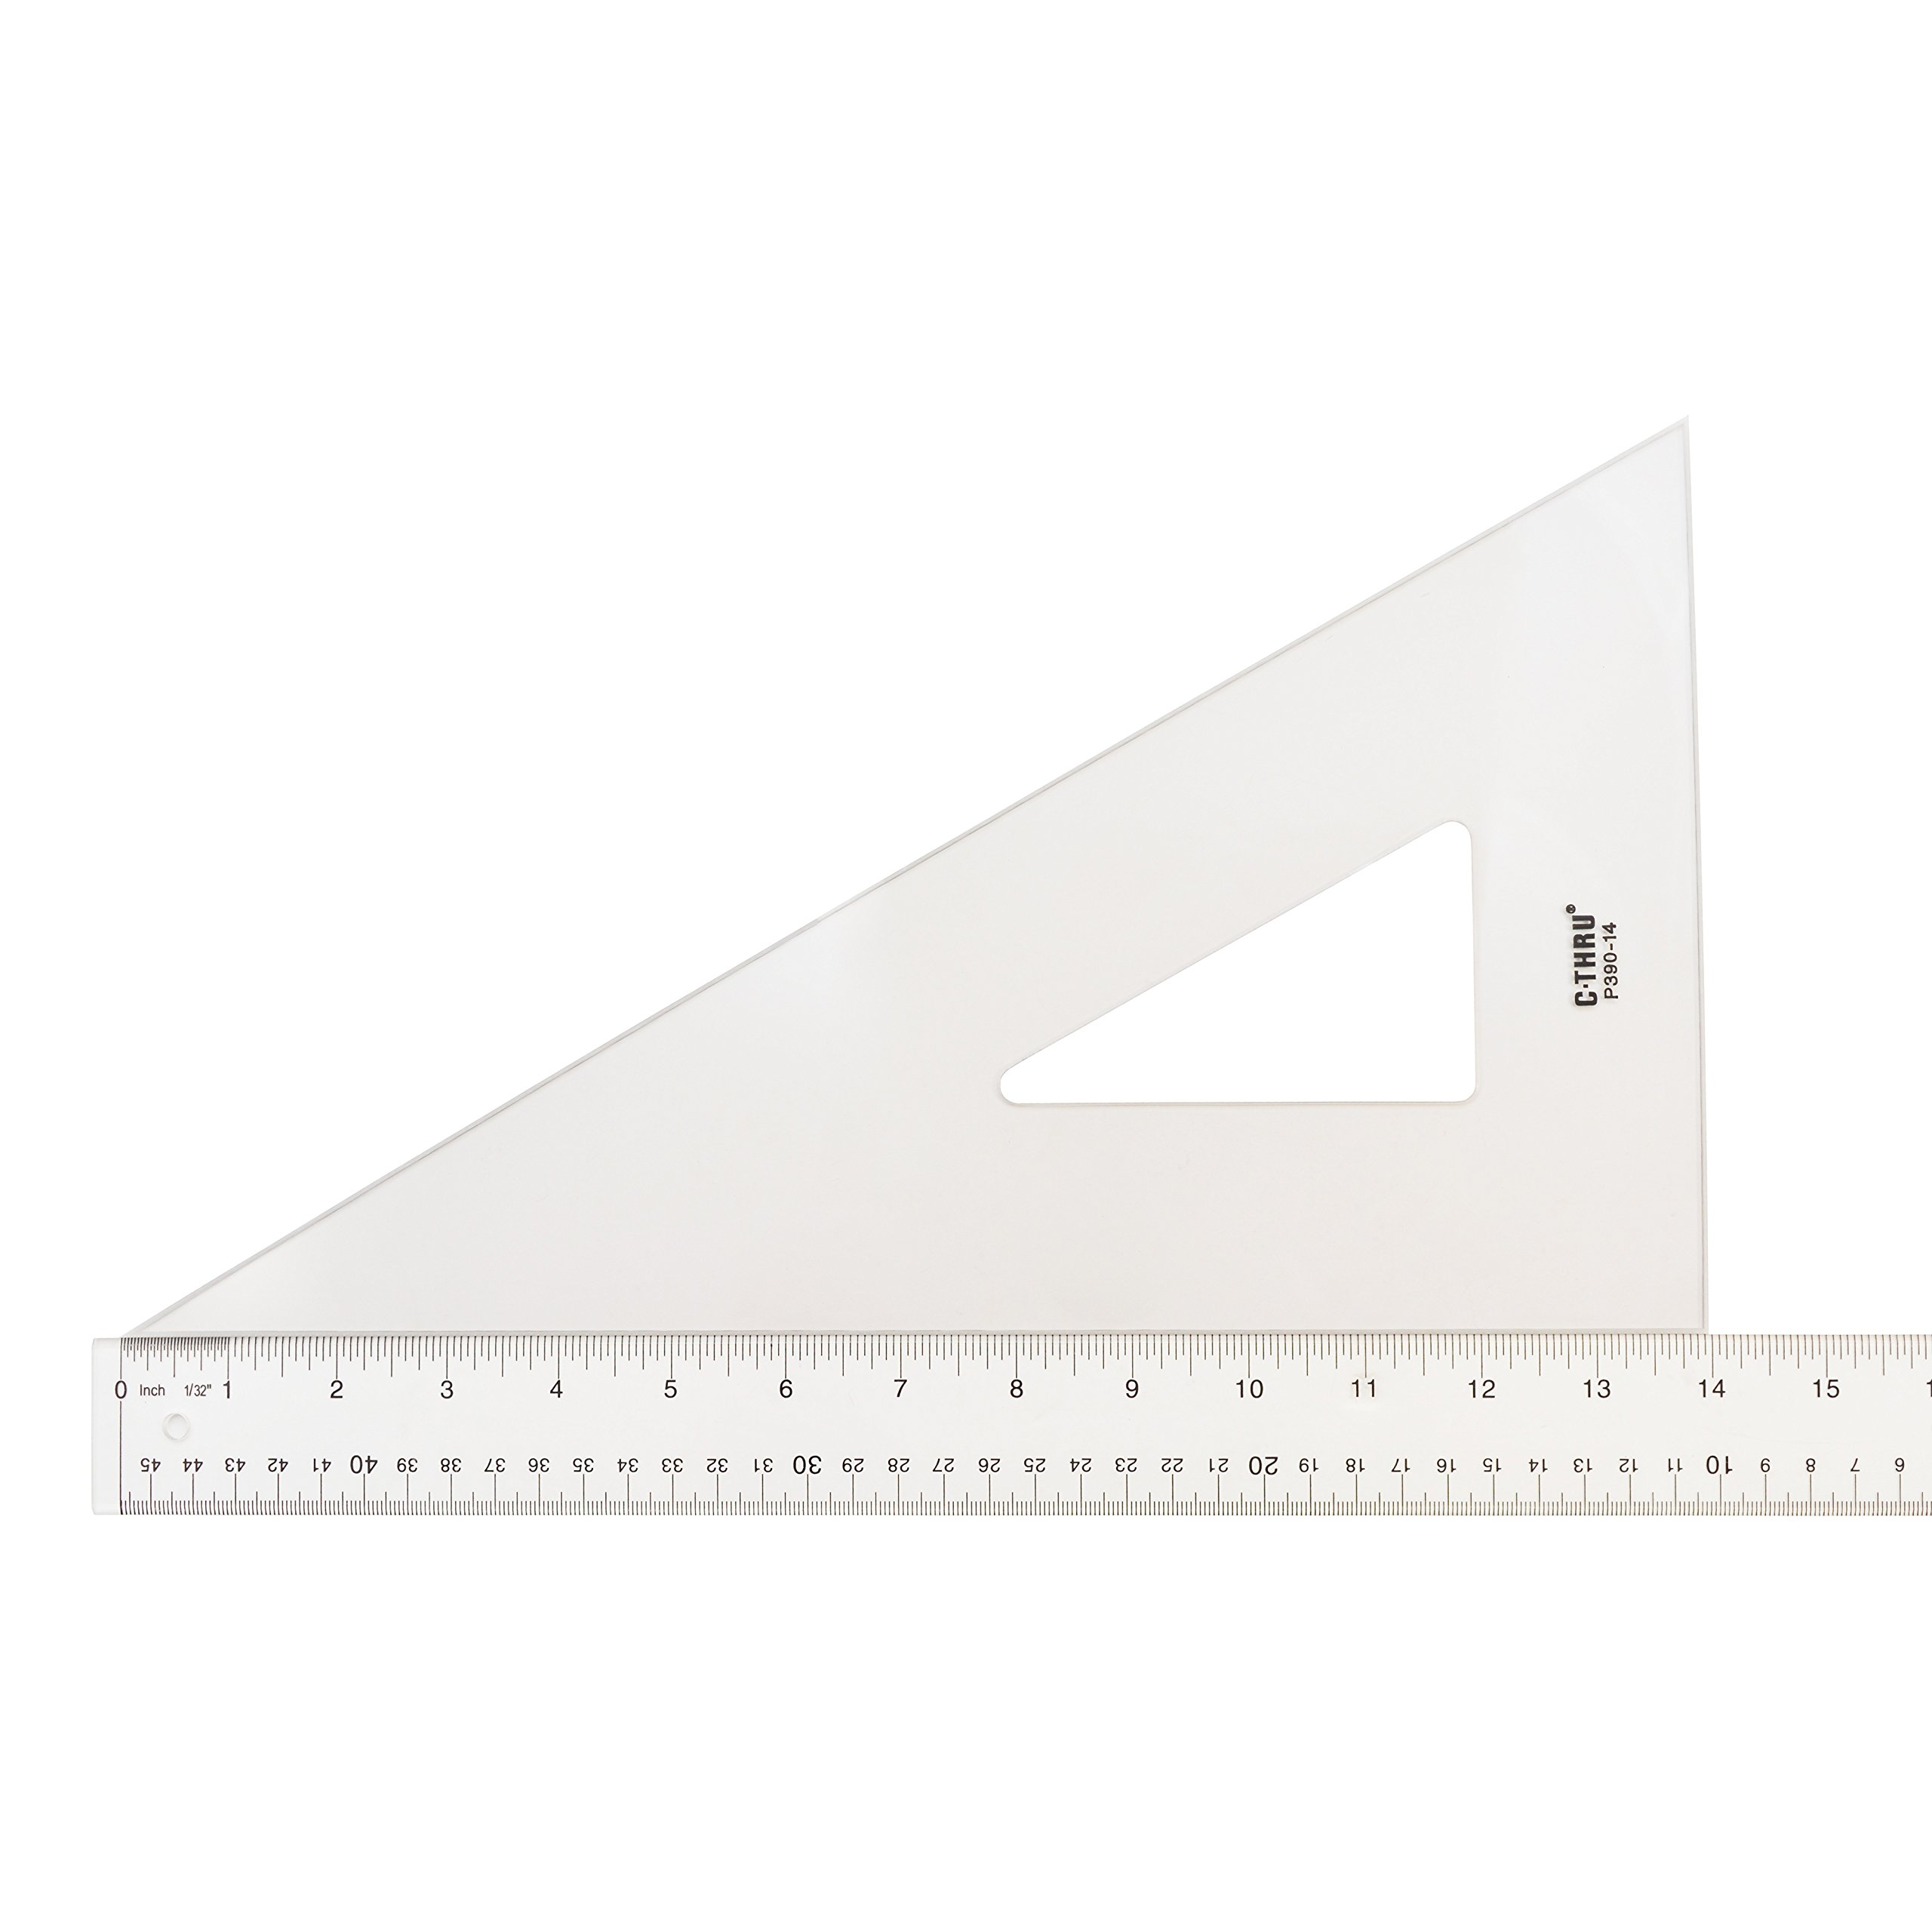 Westcott Professional Triangle, 14'', 30/60 Degree, Transparent (P390-14) by Westcott